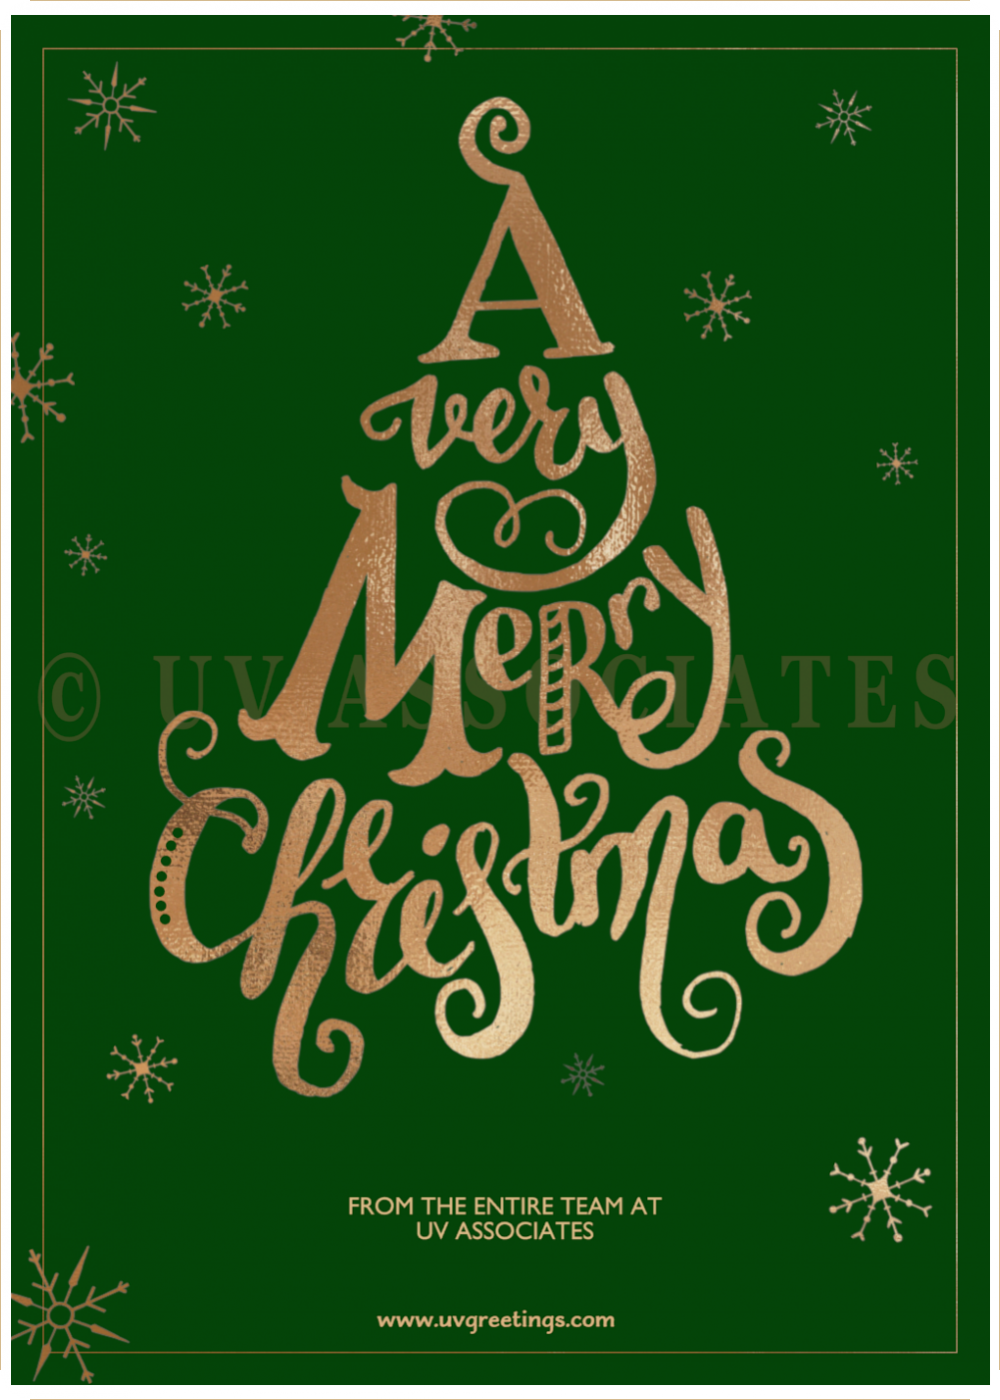 Corporate Christmas Or Seasons Greeting Cards With Christmas Trees